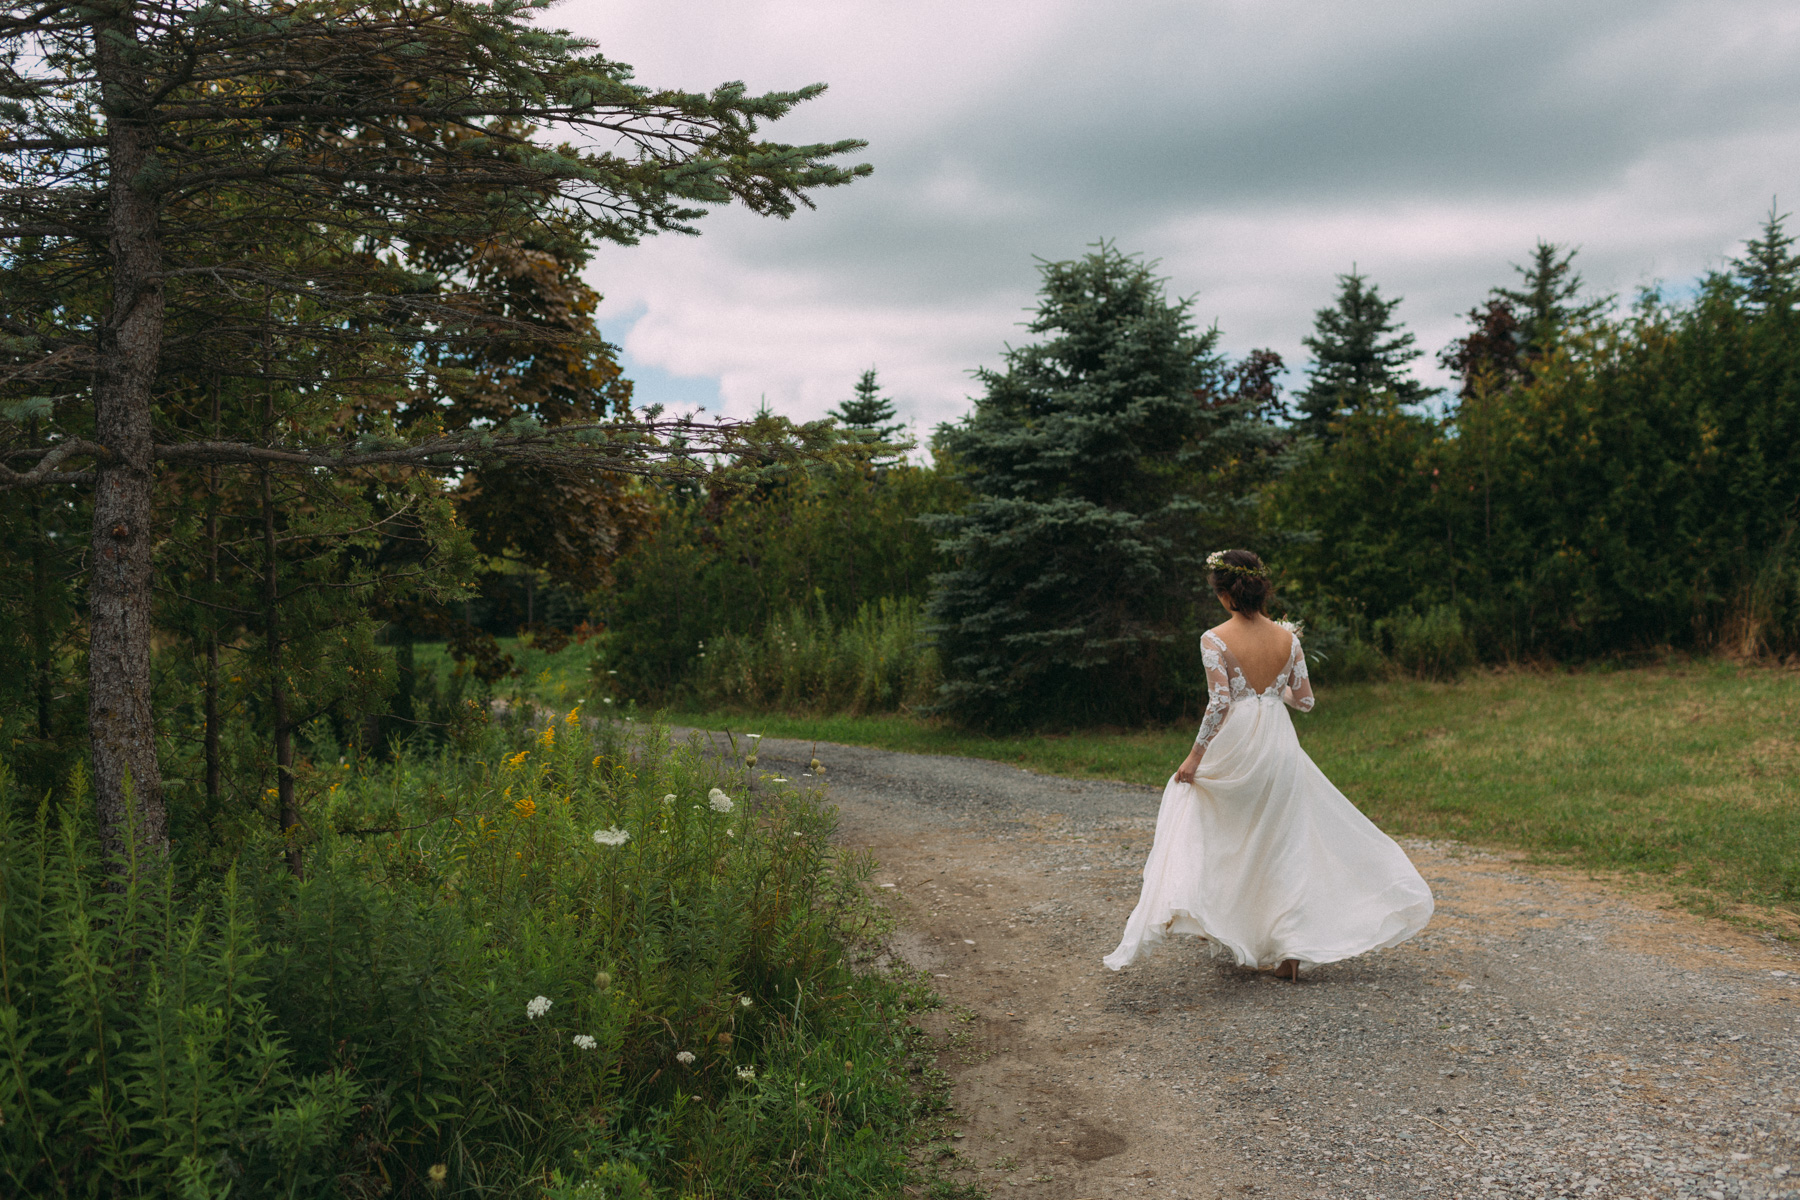 Belcroft-Estates-&-Event-Centre-wedding-photography-by-Sam-Wong-of-Artanis-Collective_013.jpg